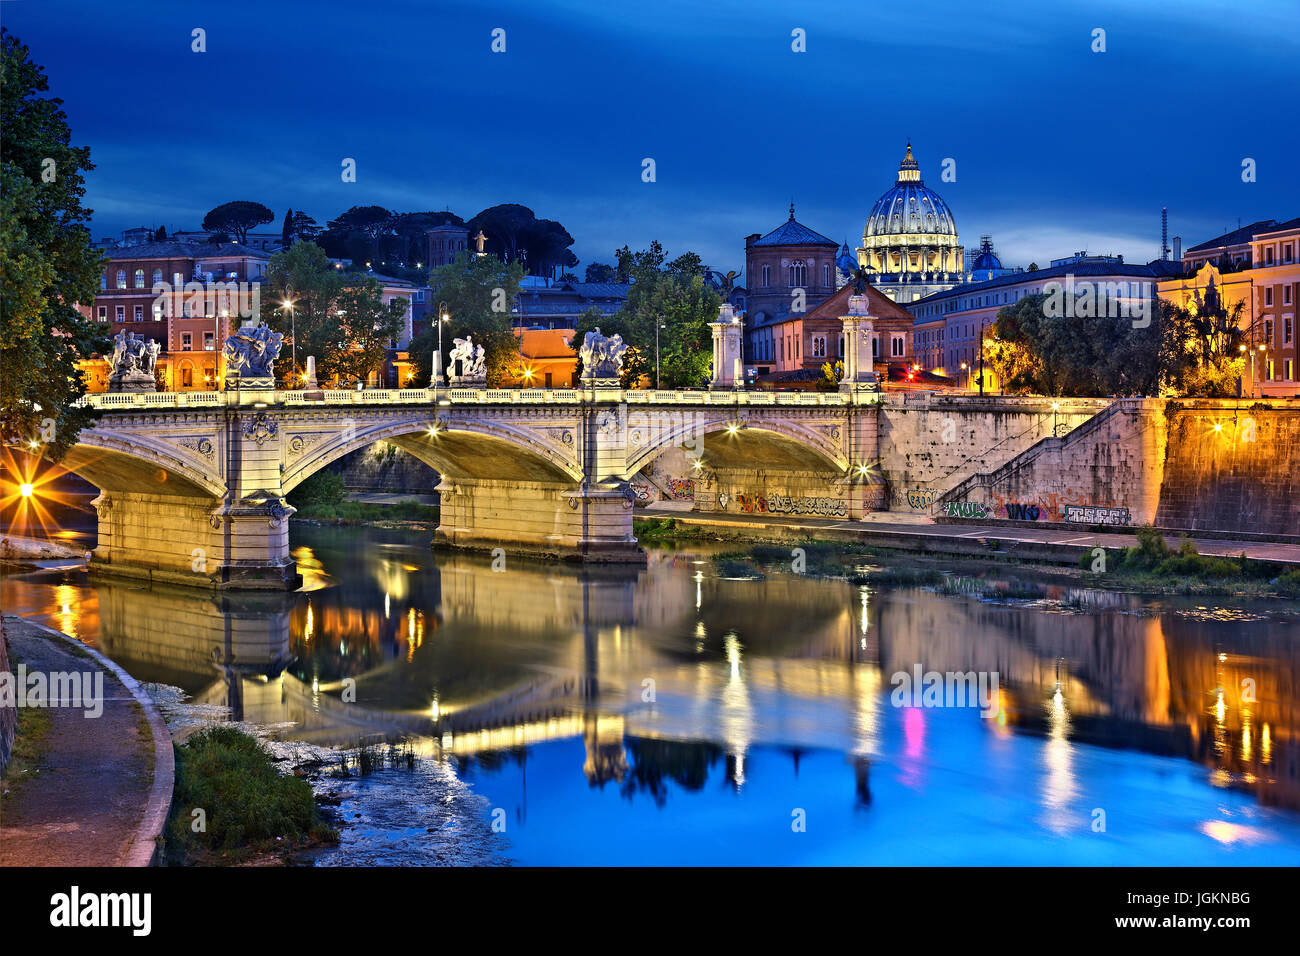 The dome of St Peter's Basilica and Ponte Vittorio Emanuele II, as seen from Ponte Sant'Angelo, Rome, Italy. - Stock Image